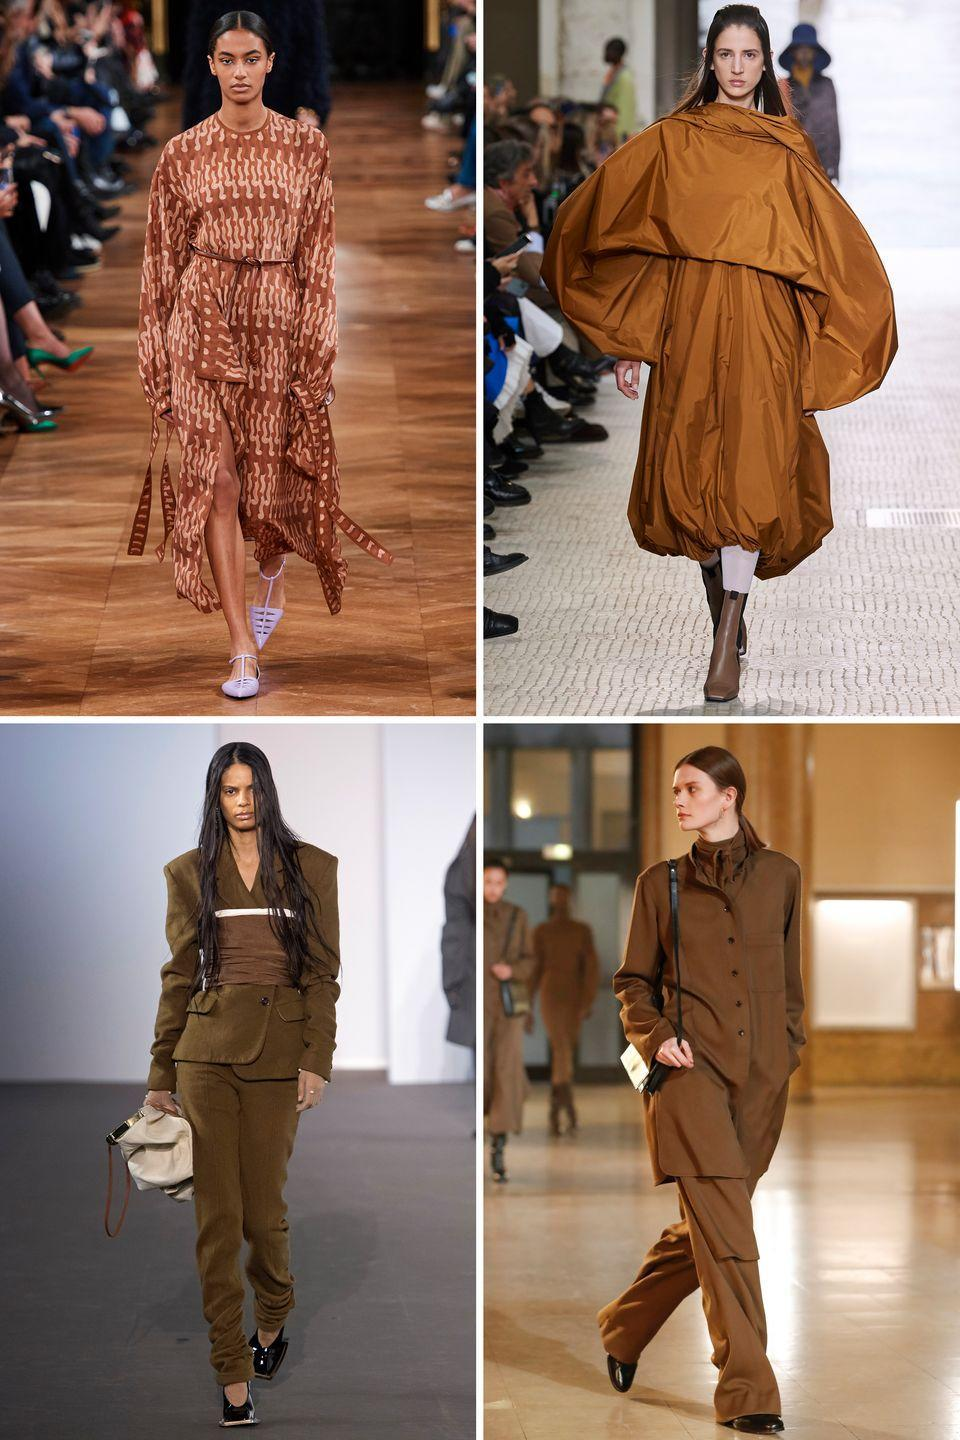 <p>Tone down in earth-inspired hues of browns. Take note from Lemaire and try the look in a relaxed suit form, or go the Stella McCartney route and try it out in a graphic printed flowy dress.</p><p><em>Clockwise from top left: Stella McCartney, Nina Ricci, Lemaire, Acne</em></p>